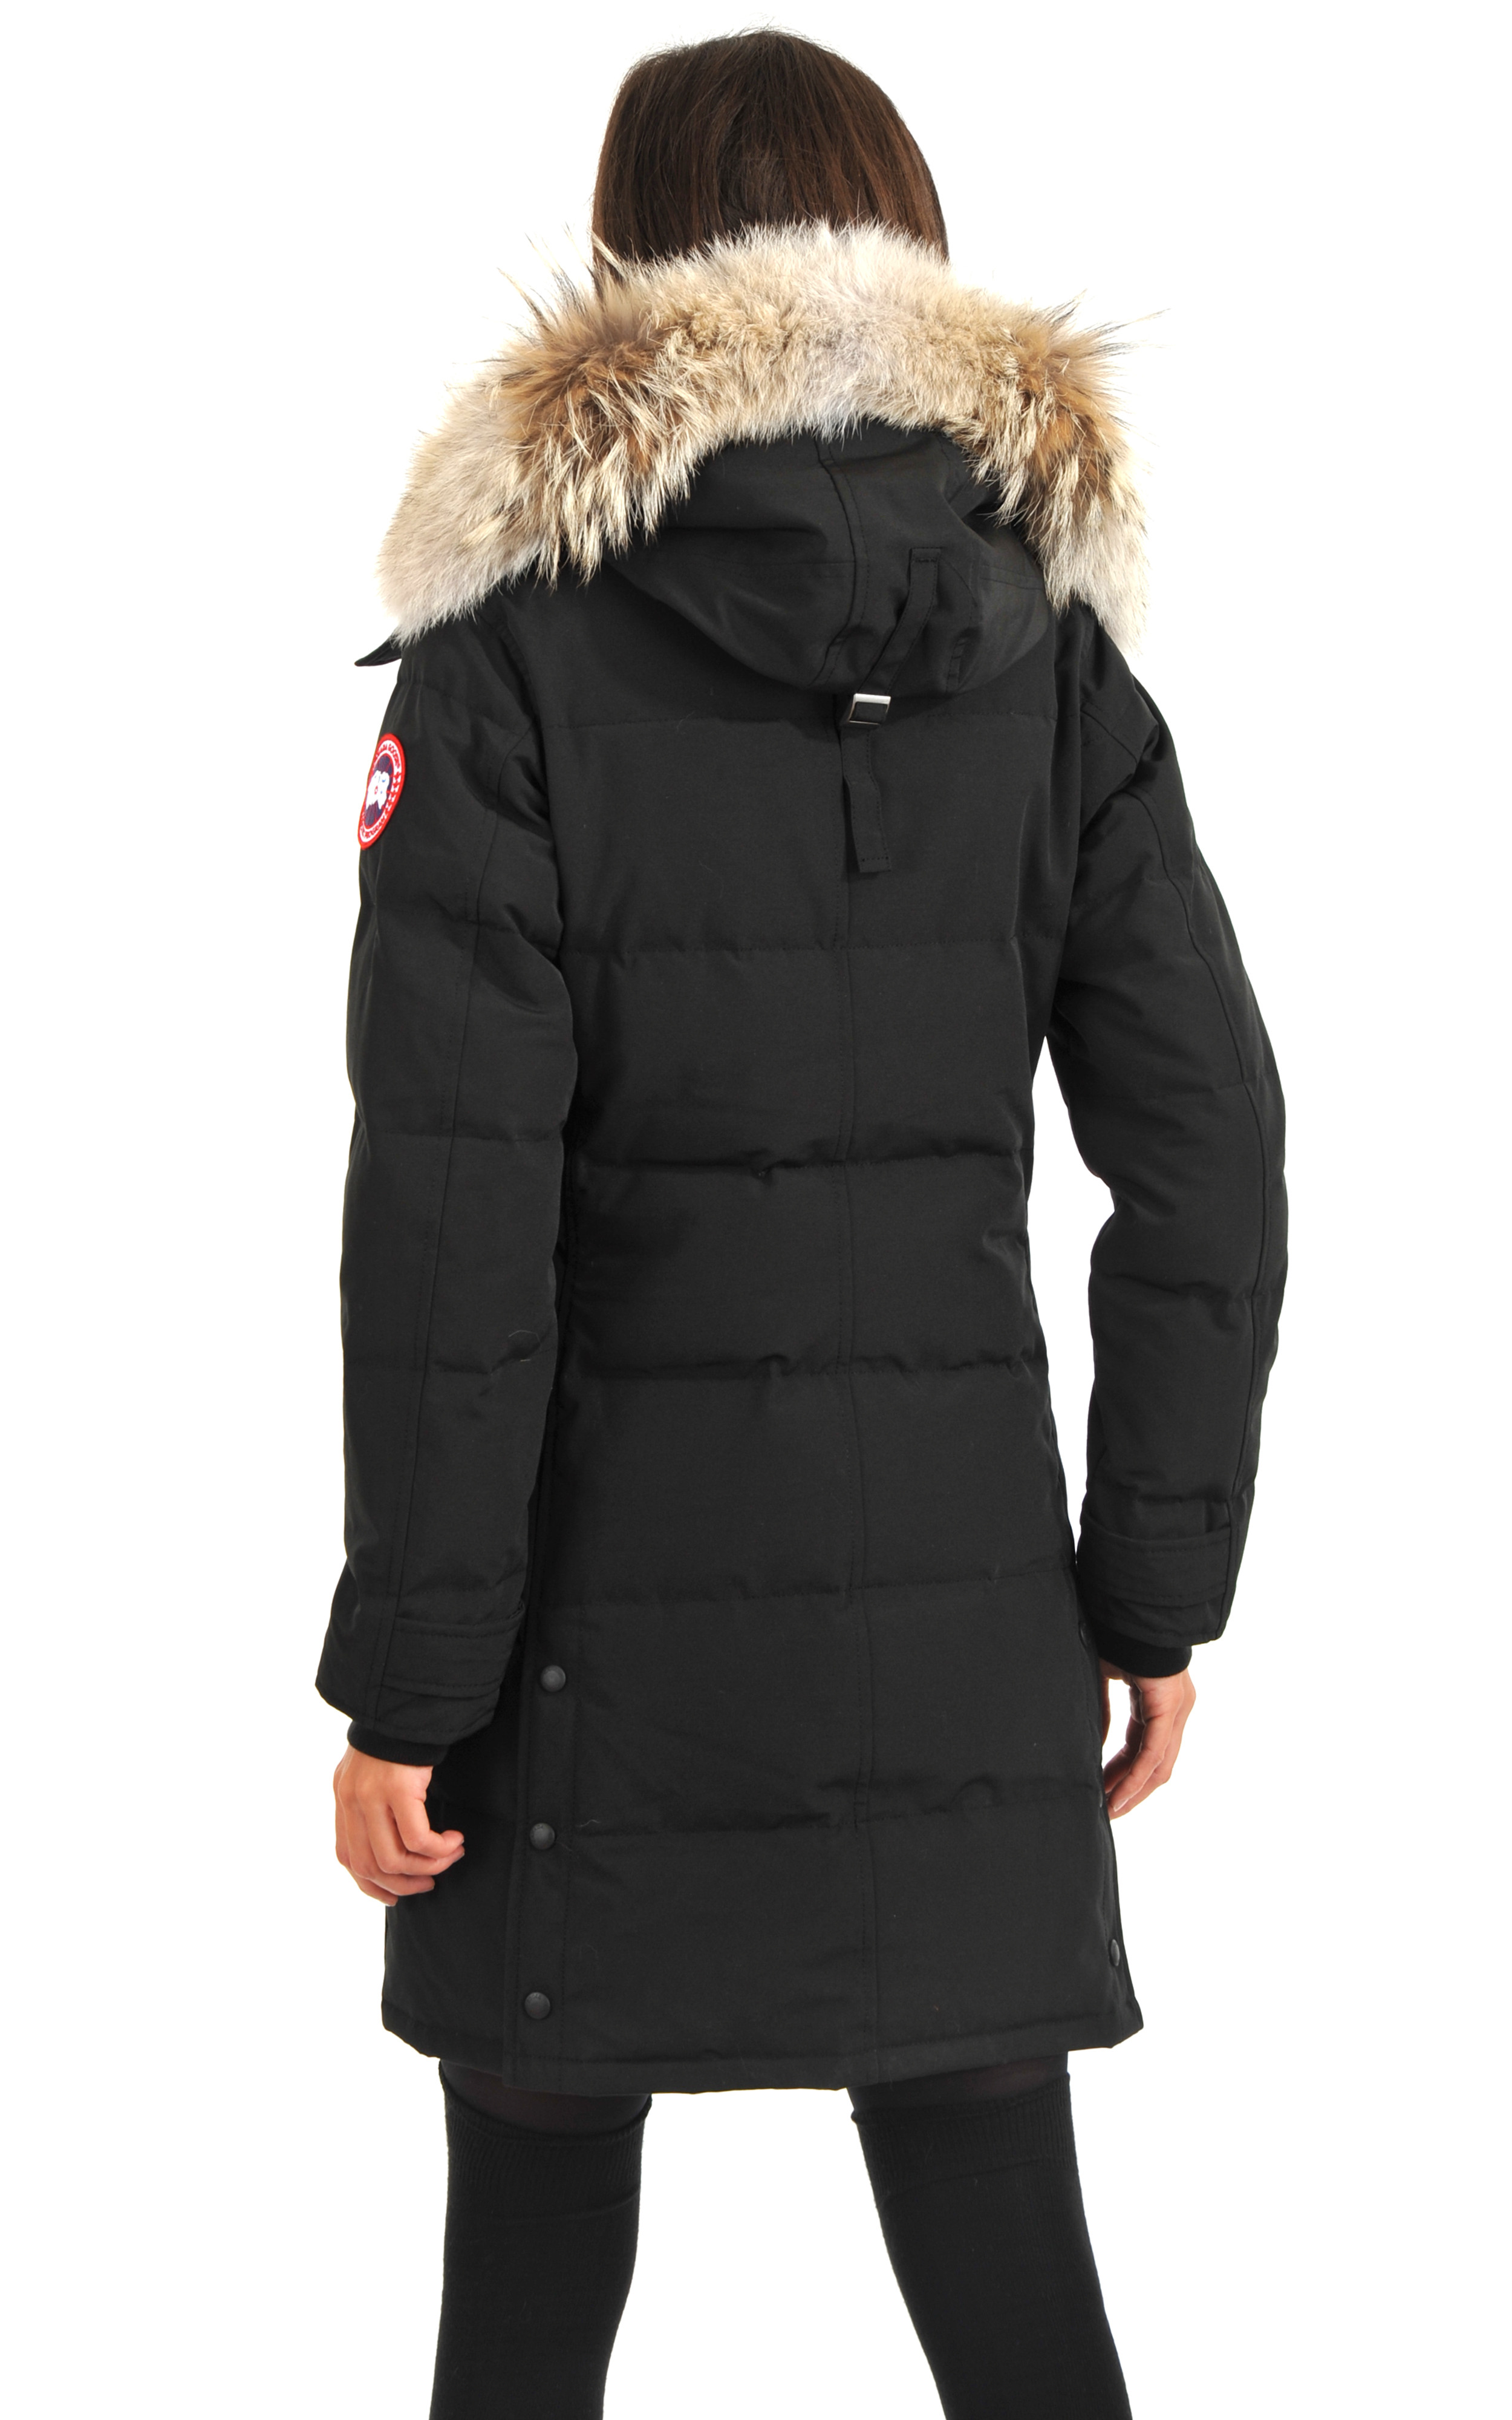 parka shelburne noir canada goose la canadienne doudoune parka textile noir. Black Bedroom Furniture Sets. Home Design Ideas